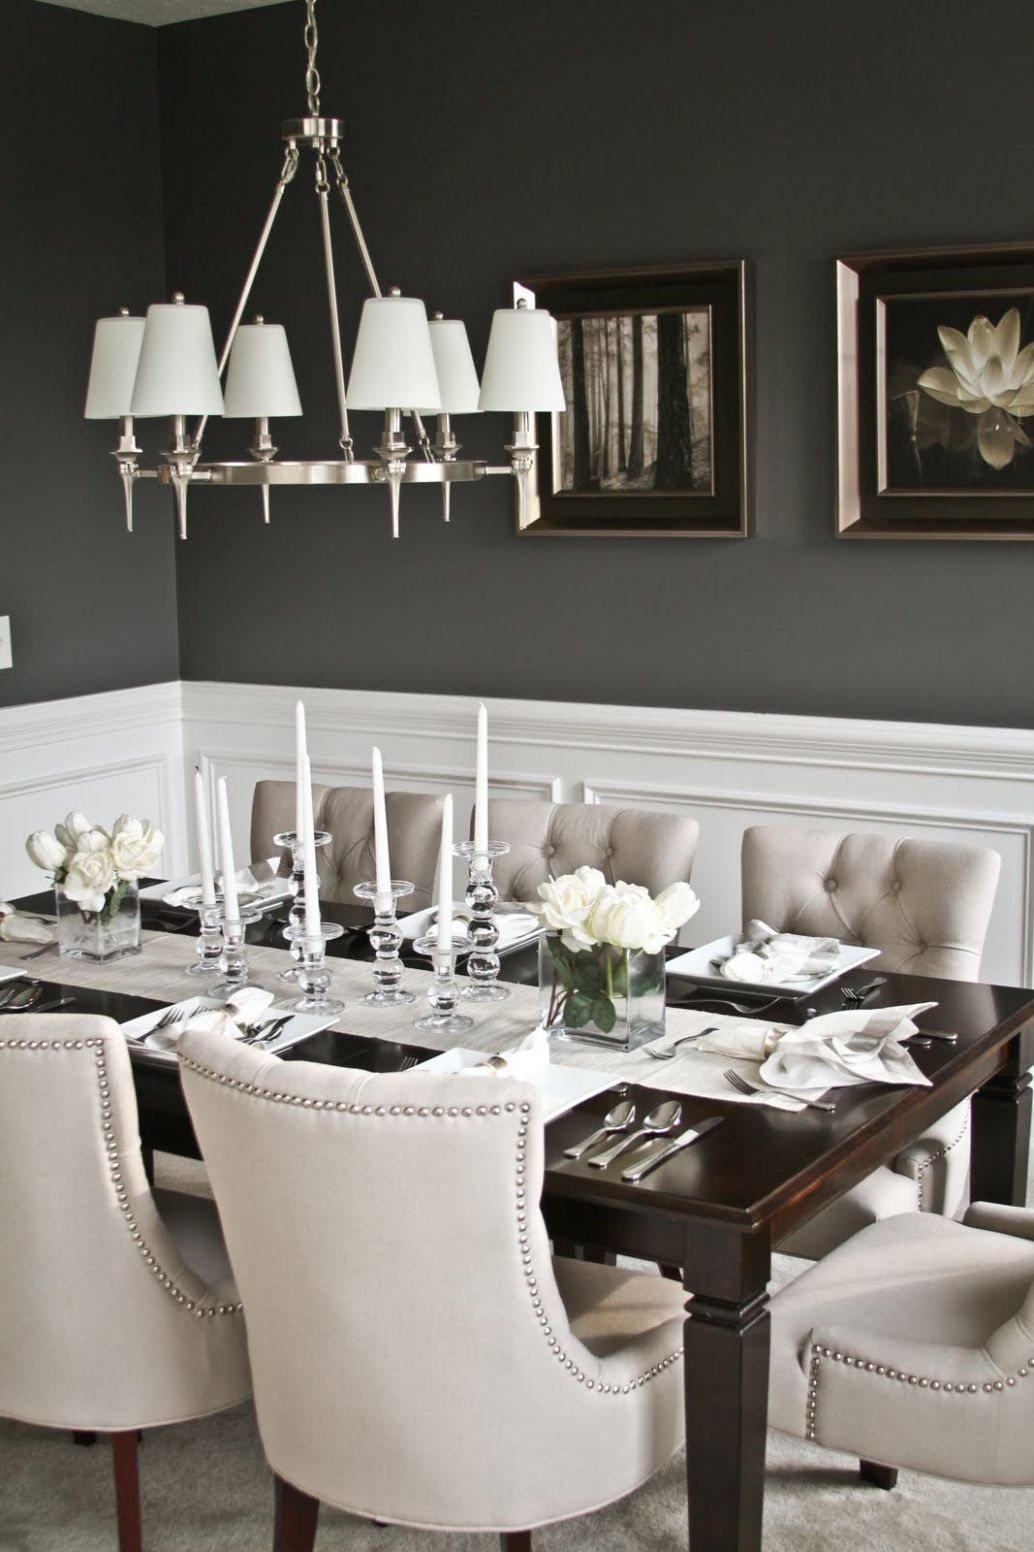 8 Wainscoting Ideas With Pros And Cons | Elegant dining room ...